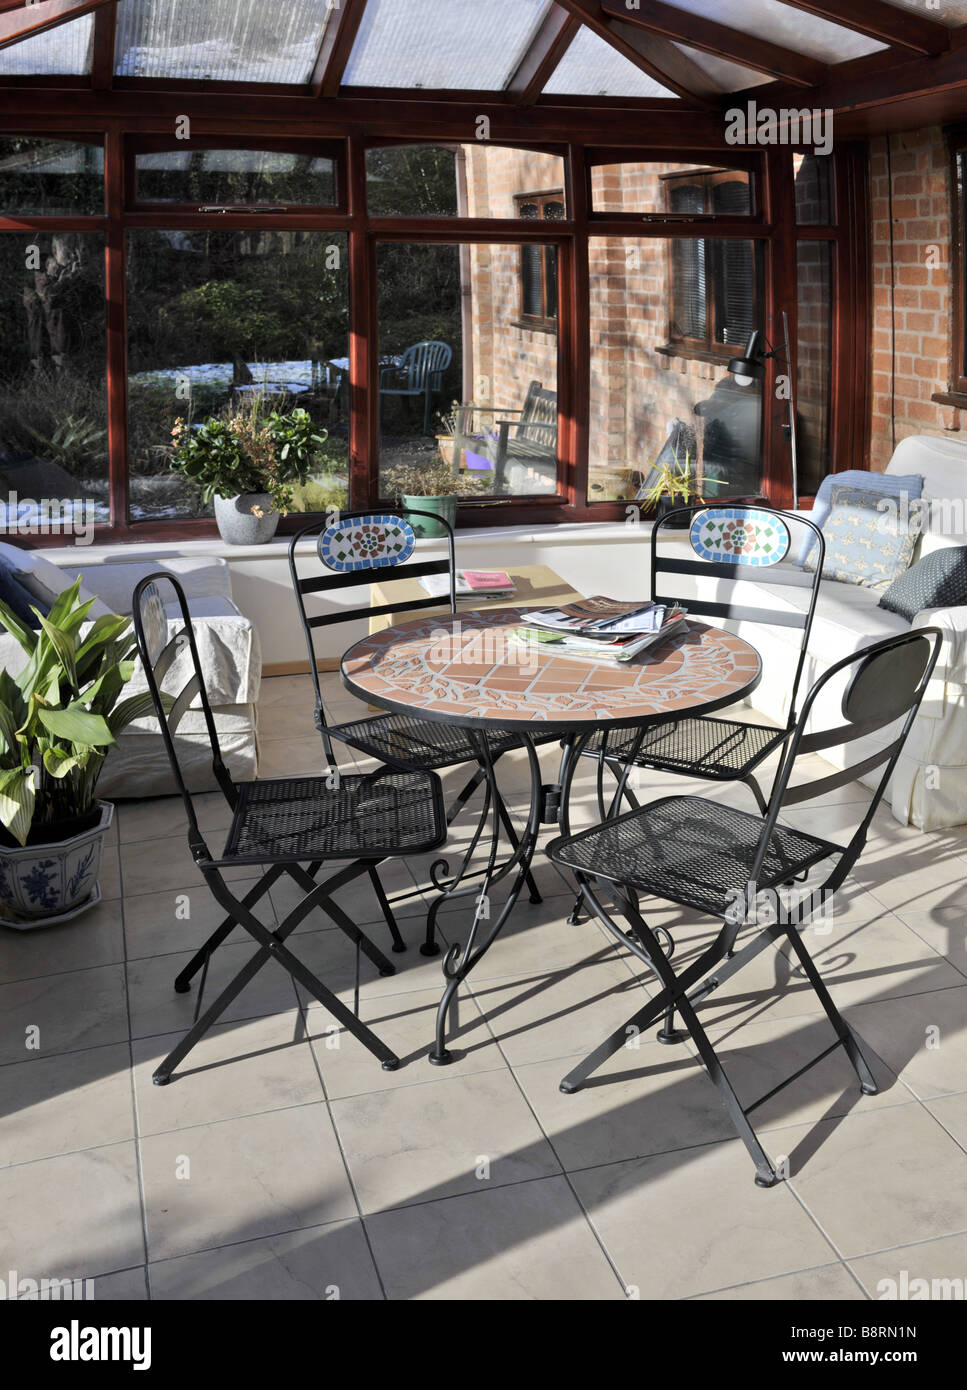 conservatory tables chairs plants room in house next to garden - Stock Image